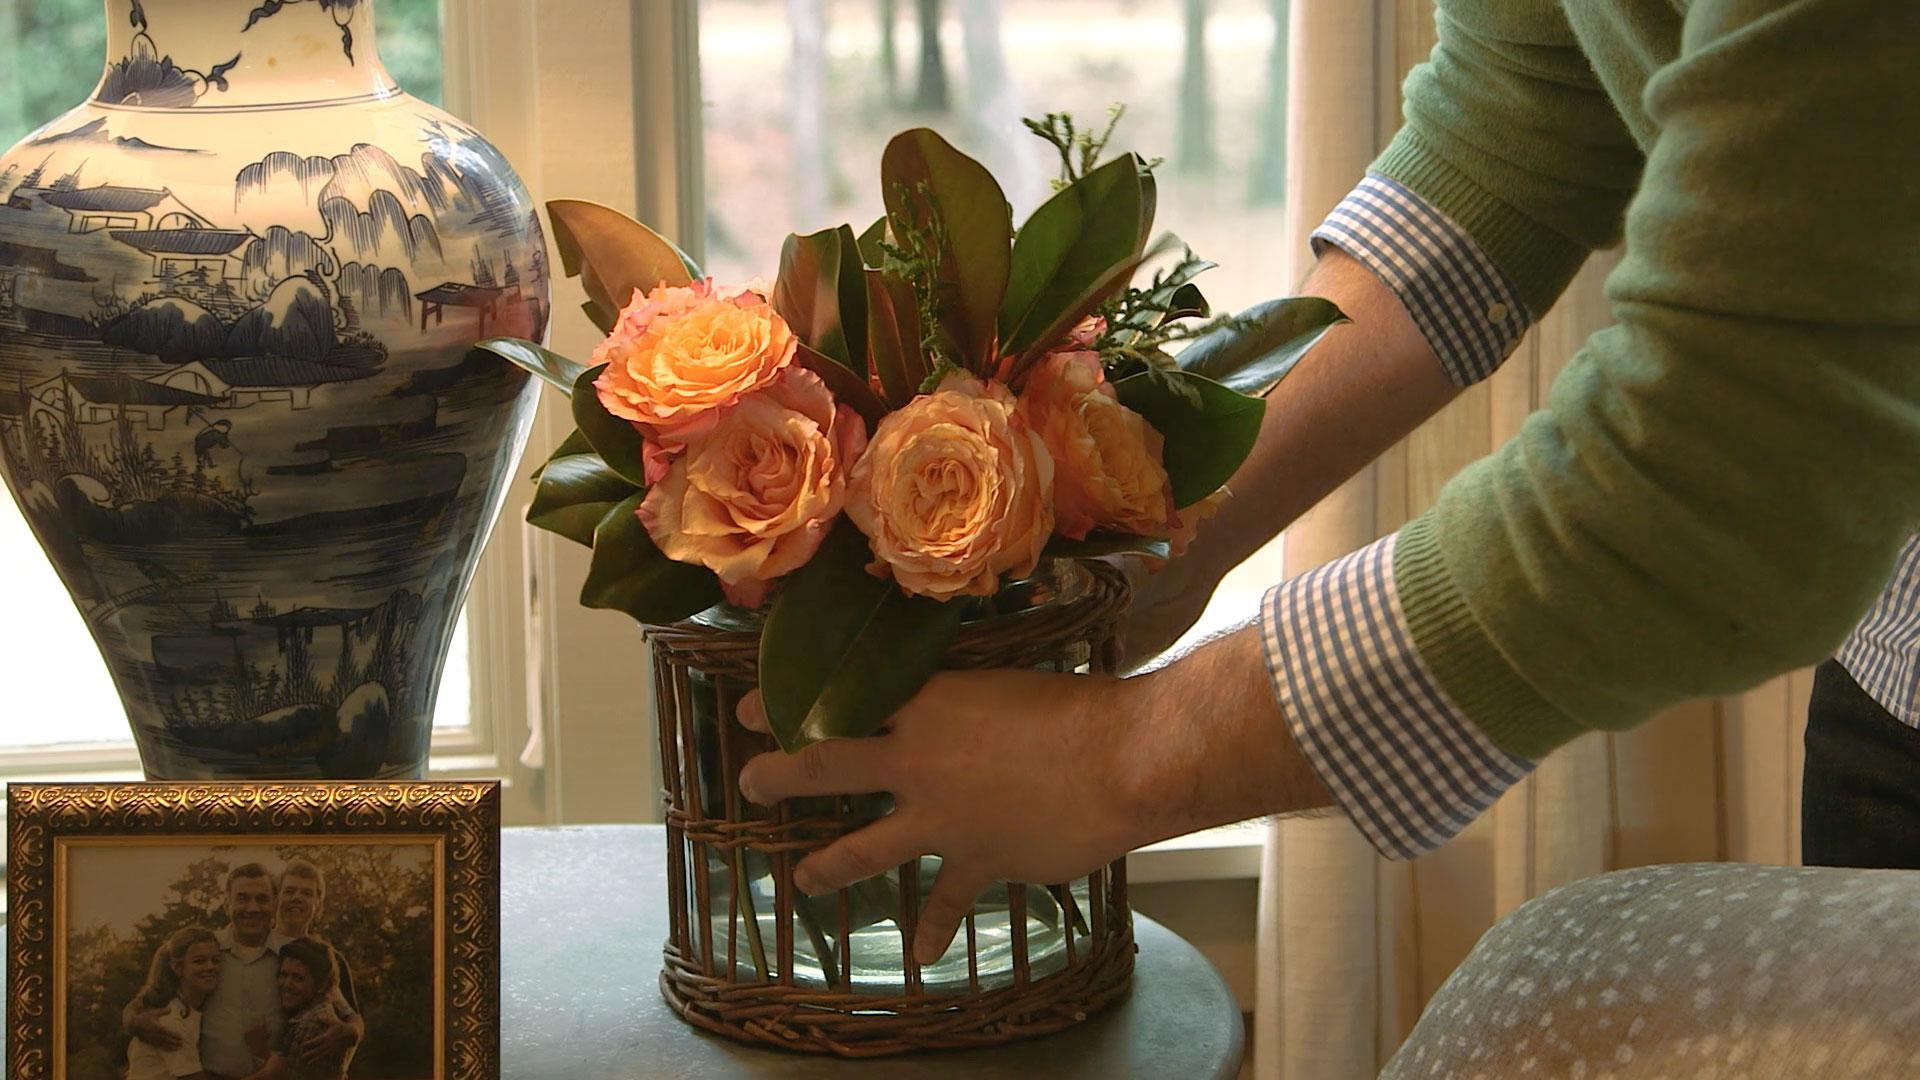 Arranging Flowers with James Farmer